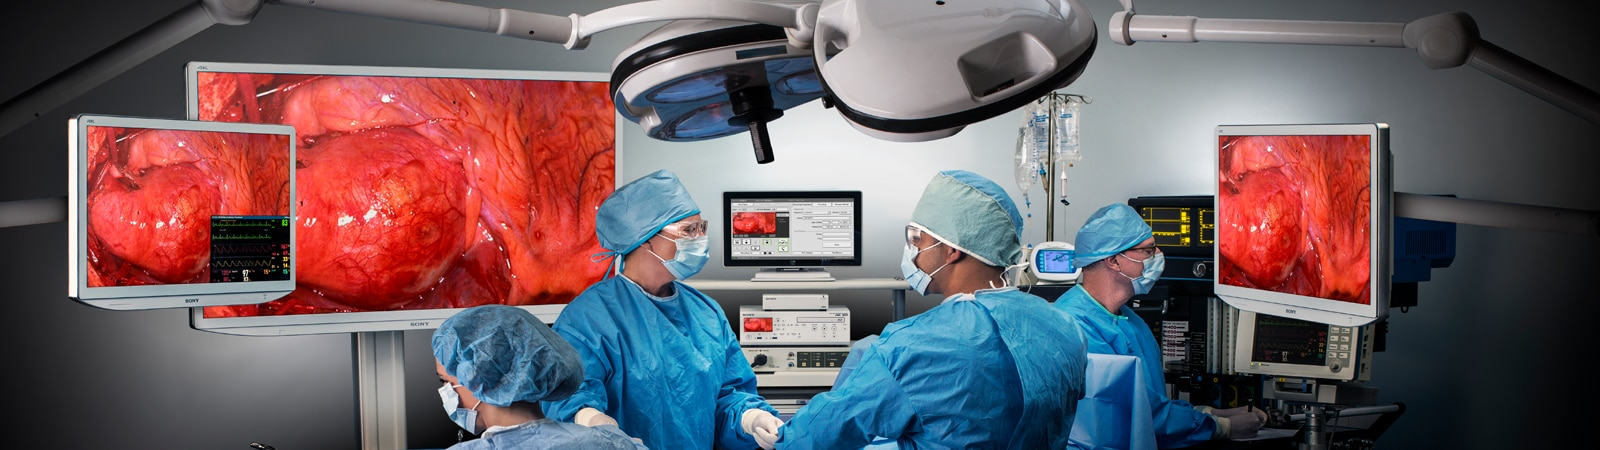 Surgery being performed in an operating room with multiple displays